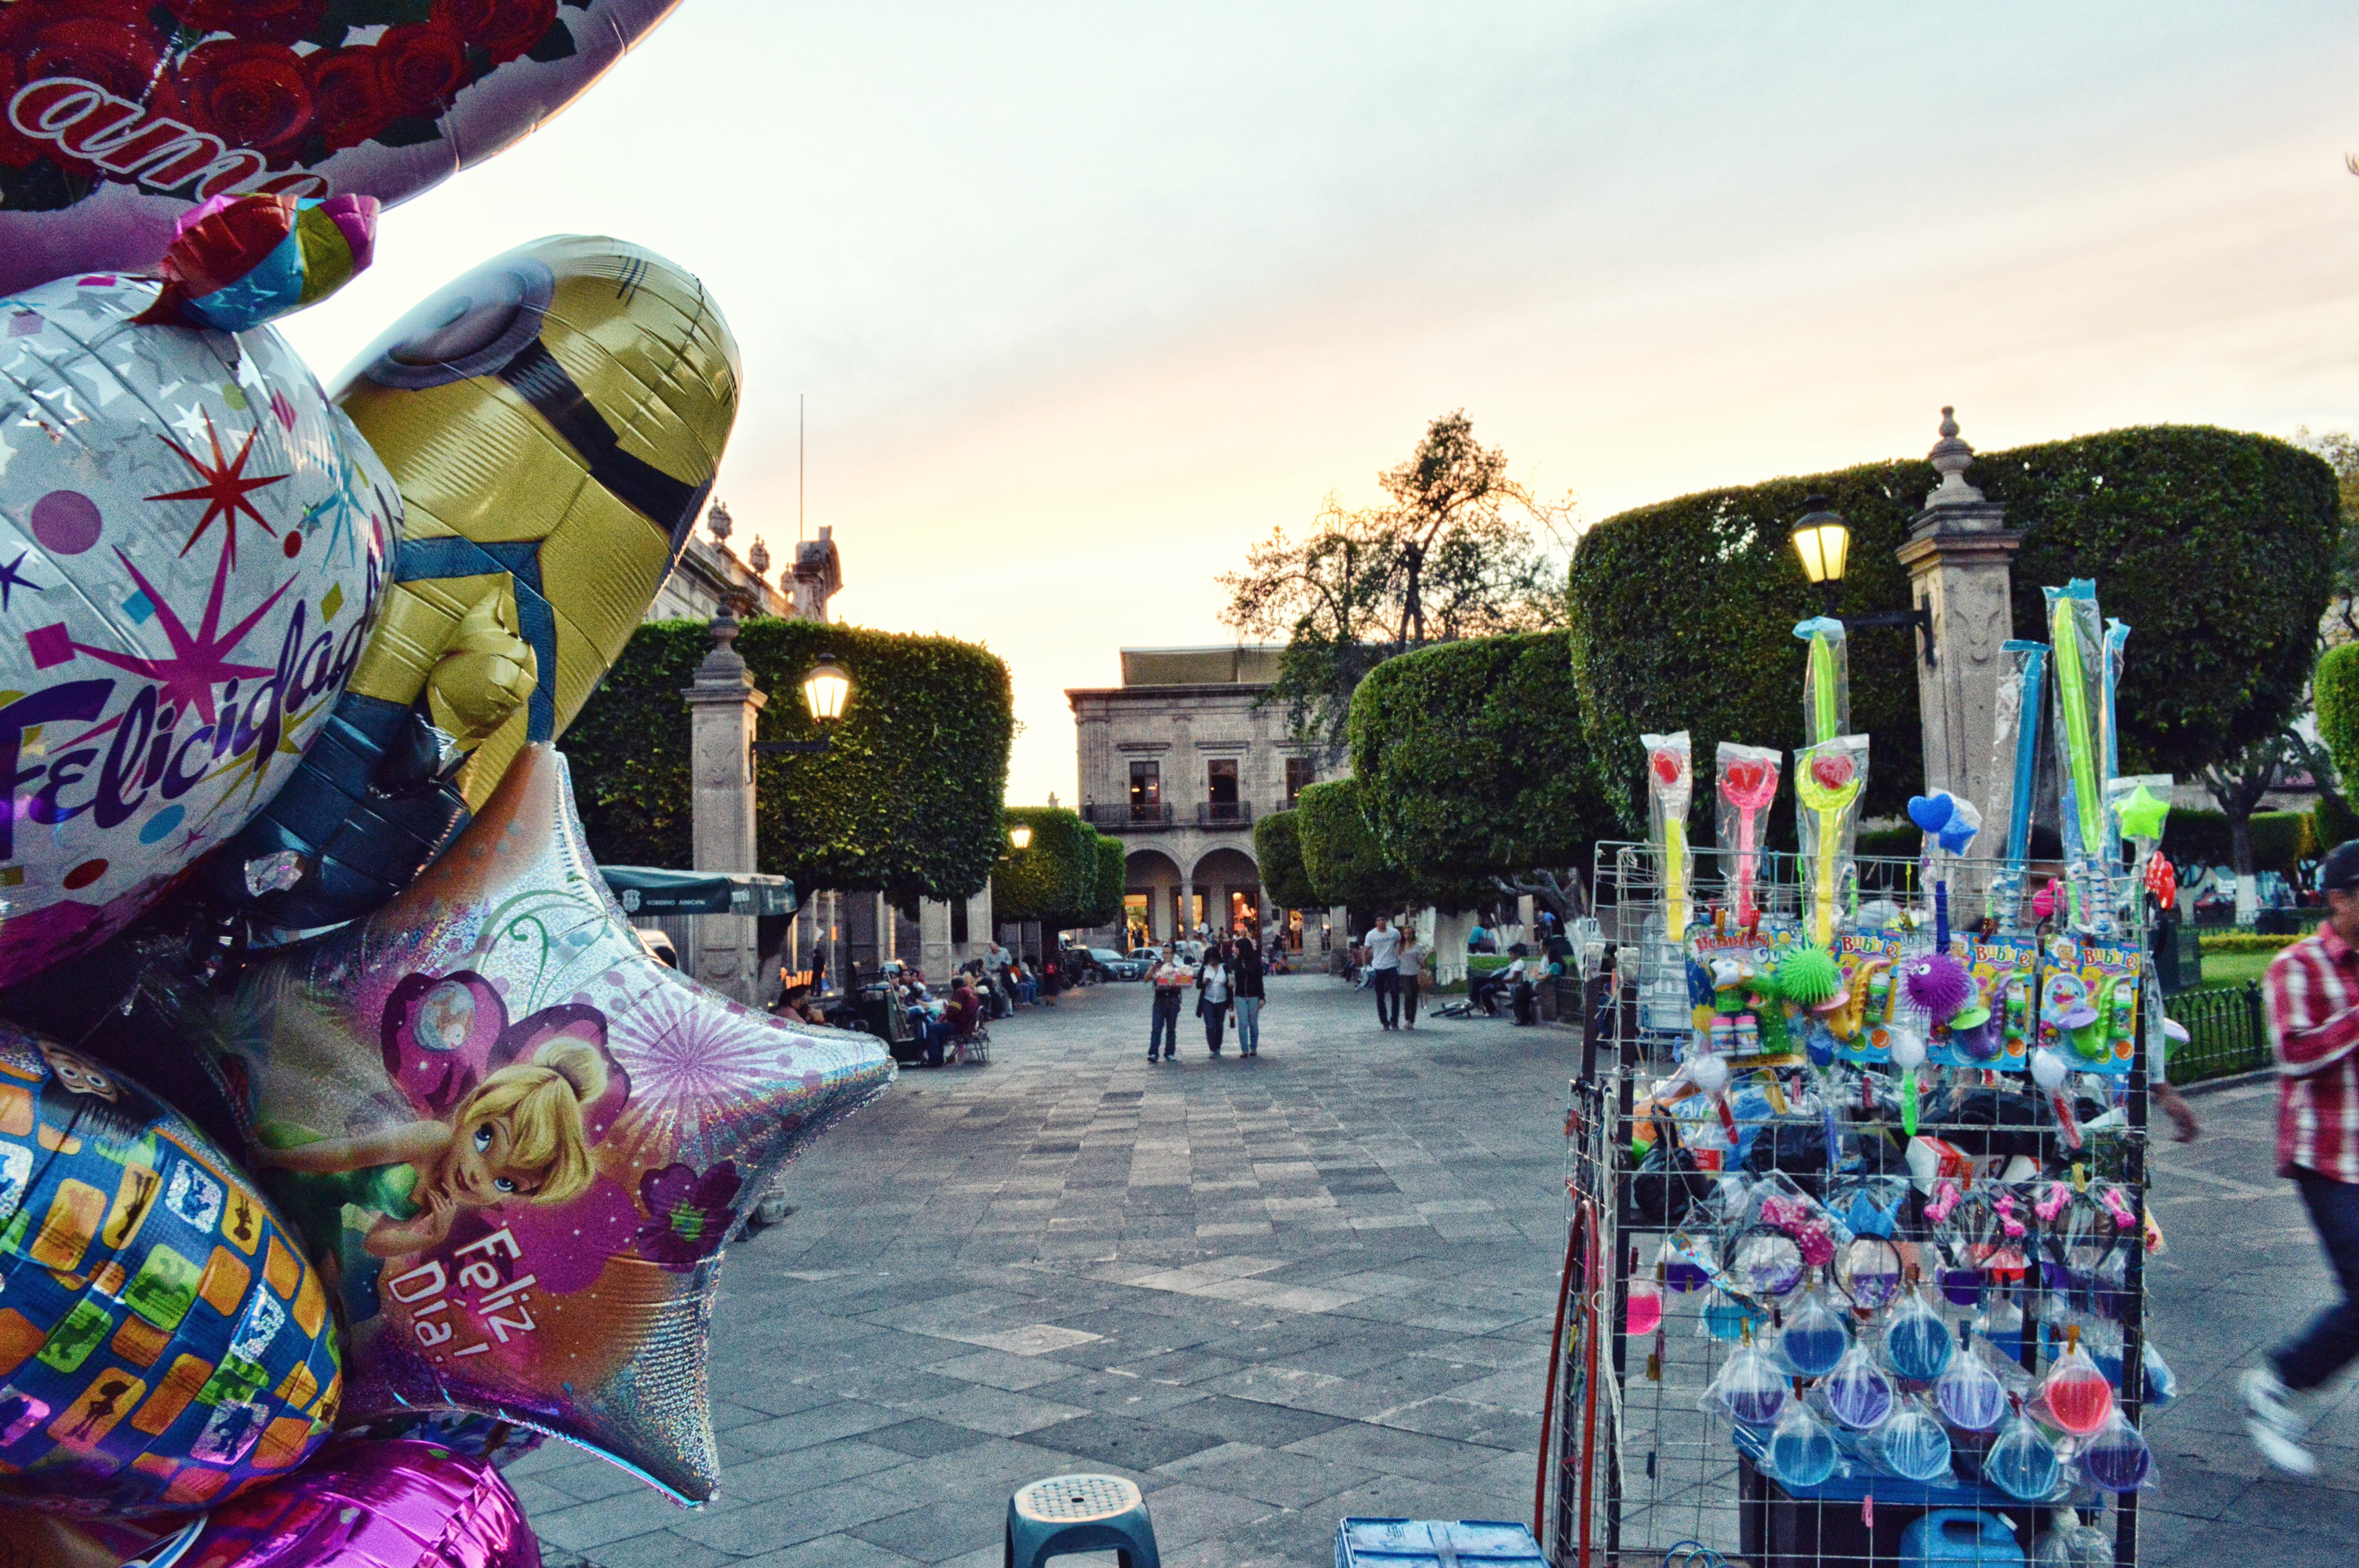 Photo of Balloons and Souvenir on Street